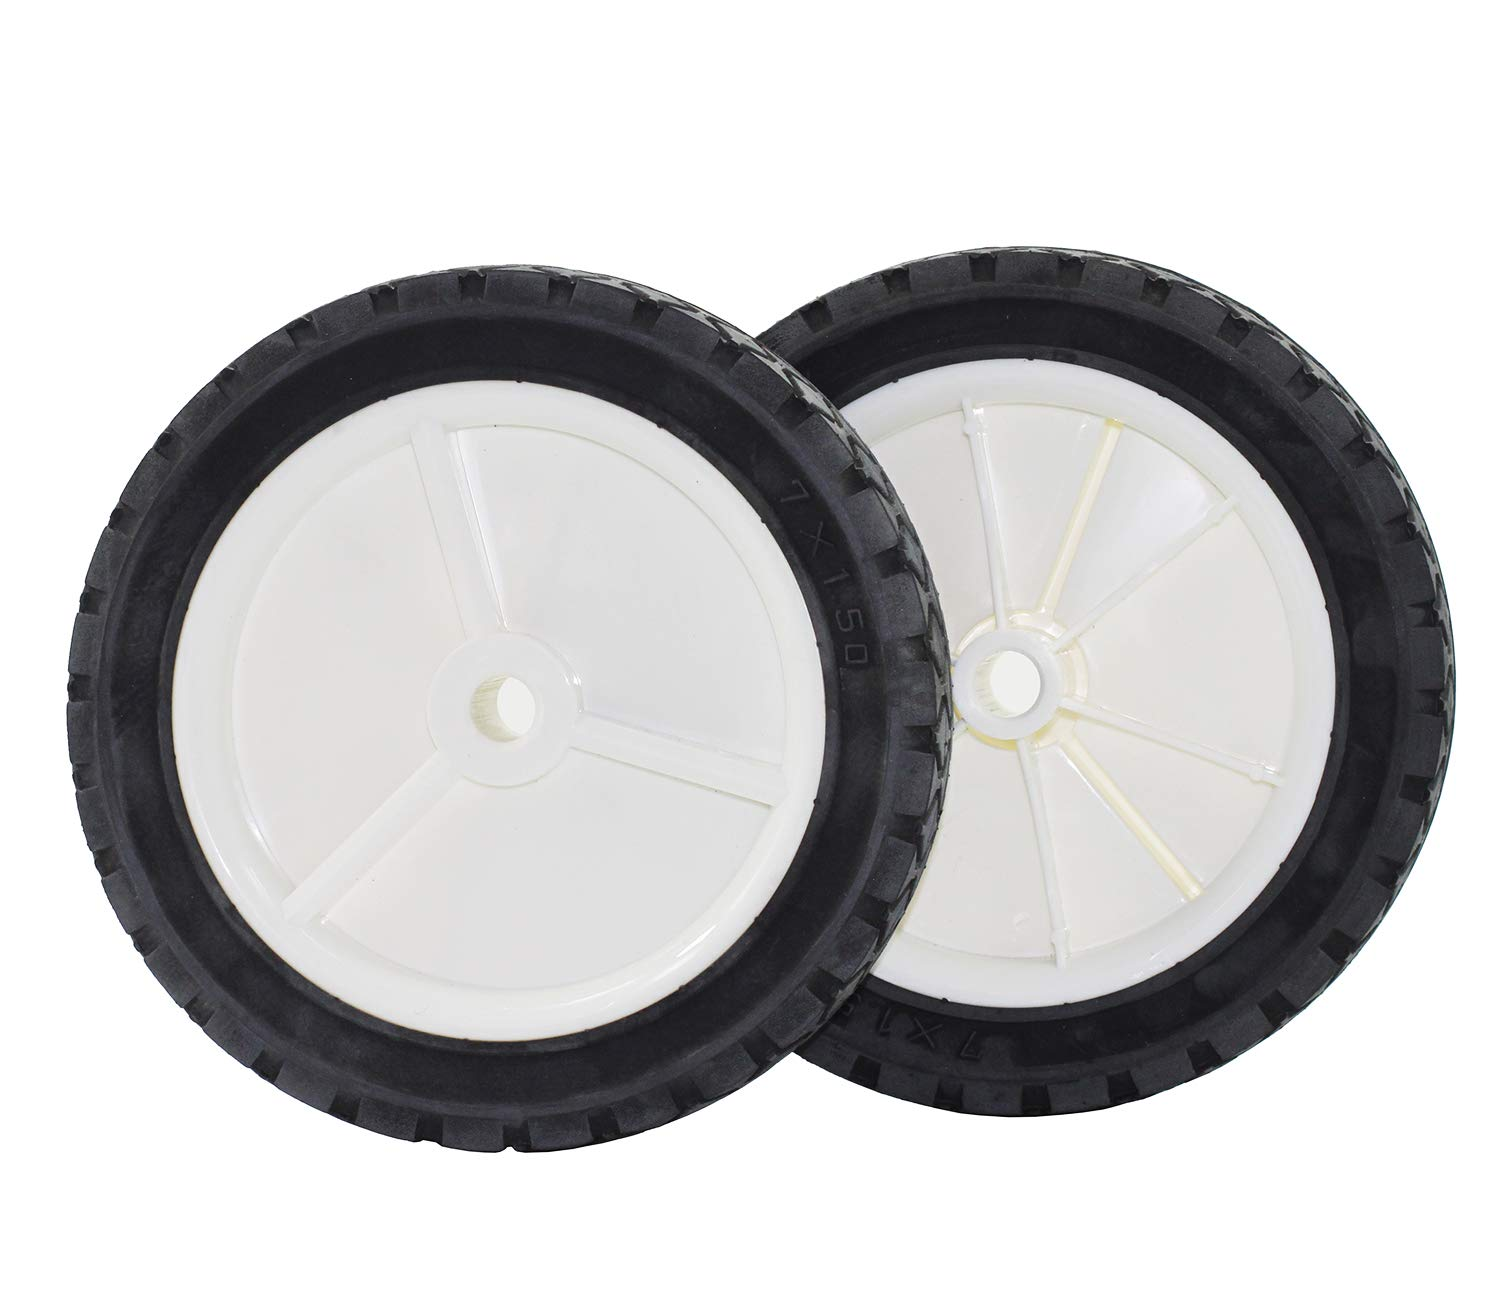 Antanker Replacement Hand Trucks Lawnmower Grill Wheel 7-inch 2 Pack